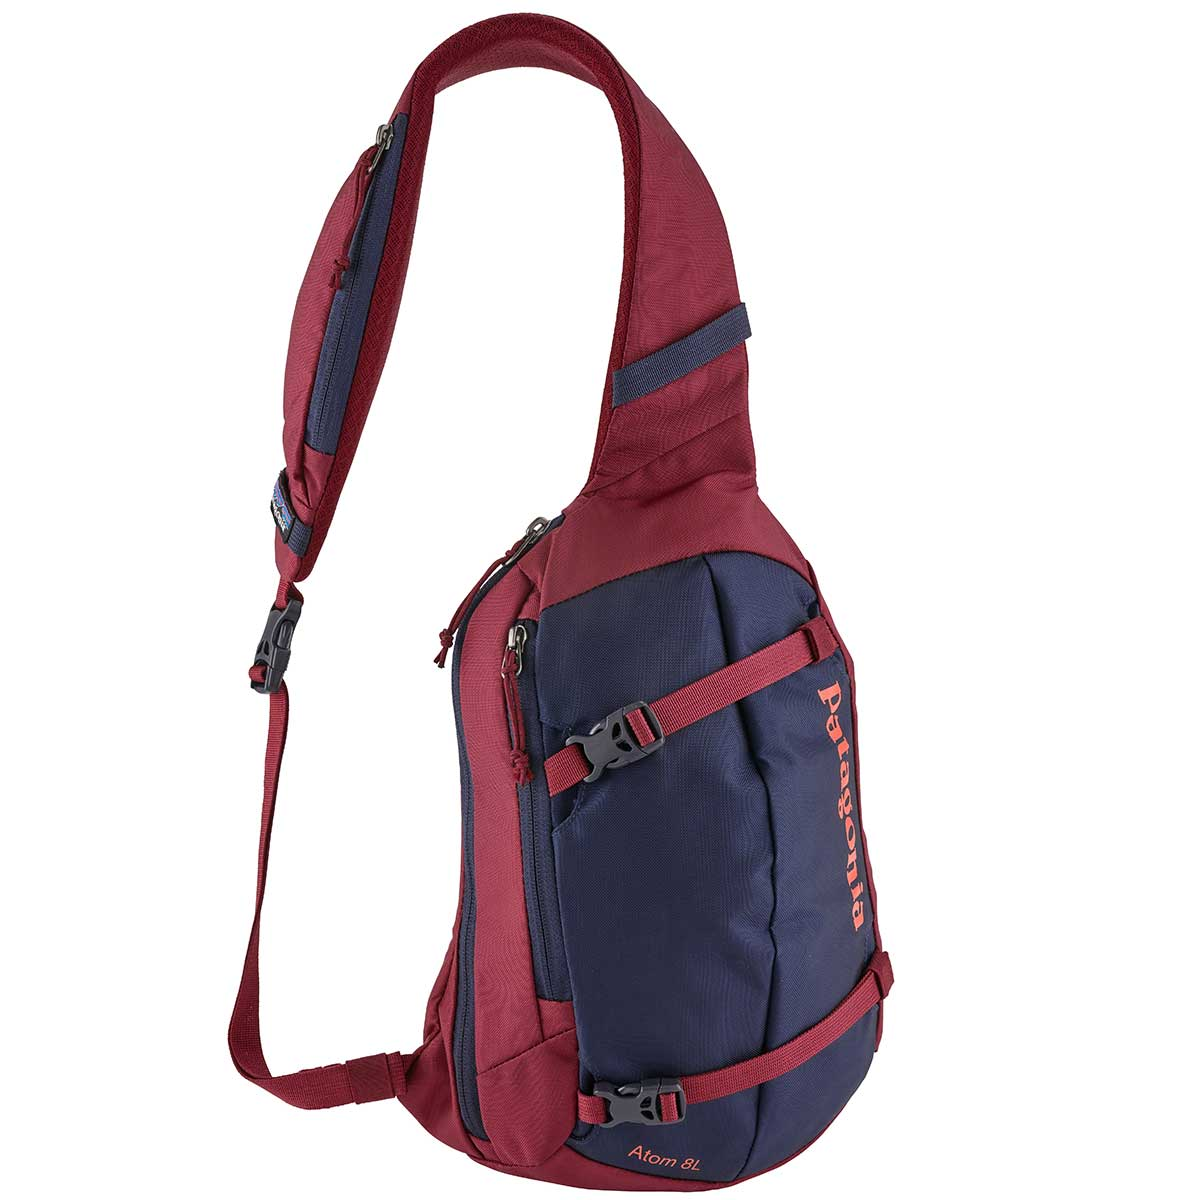 Patagonia Atom Sling 8L Day Pack in Arrow Red front view